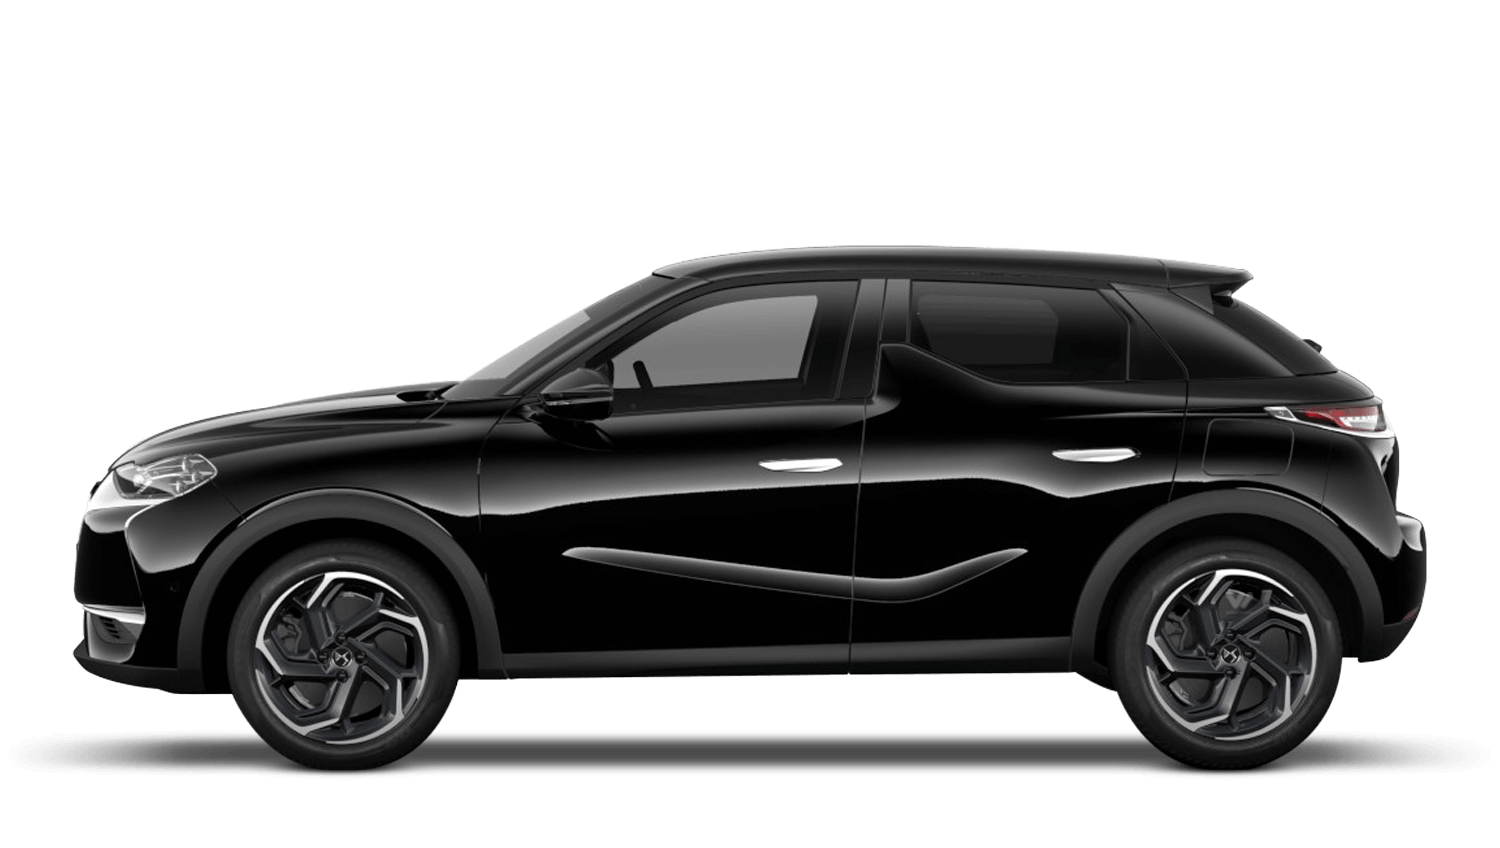 Perla Nera Black (Metallic) DS DS 3 Crossback